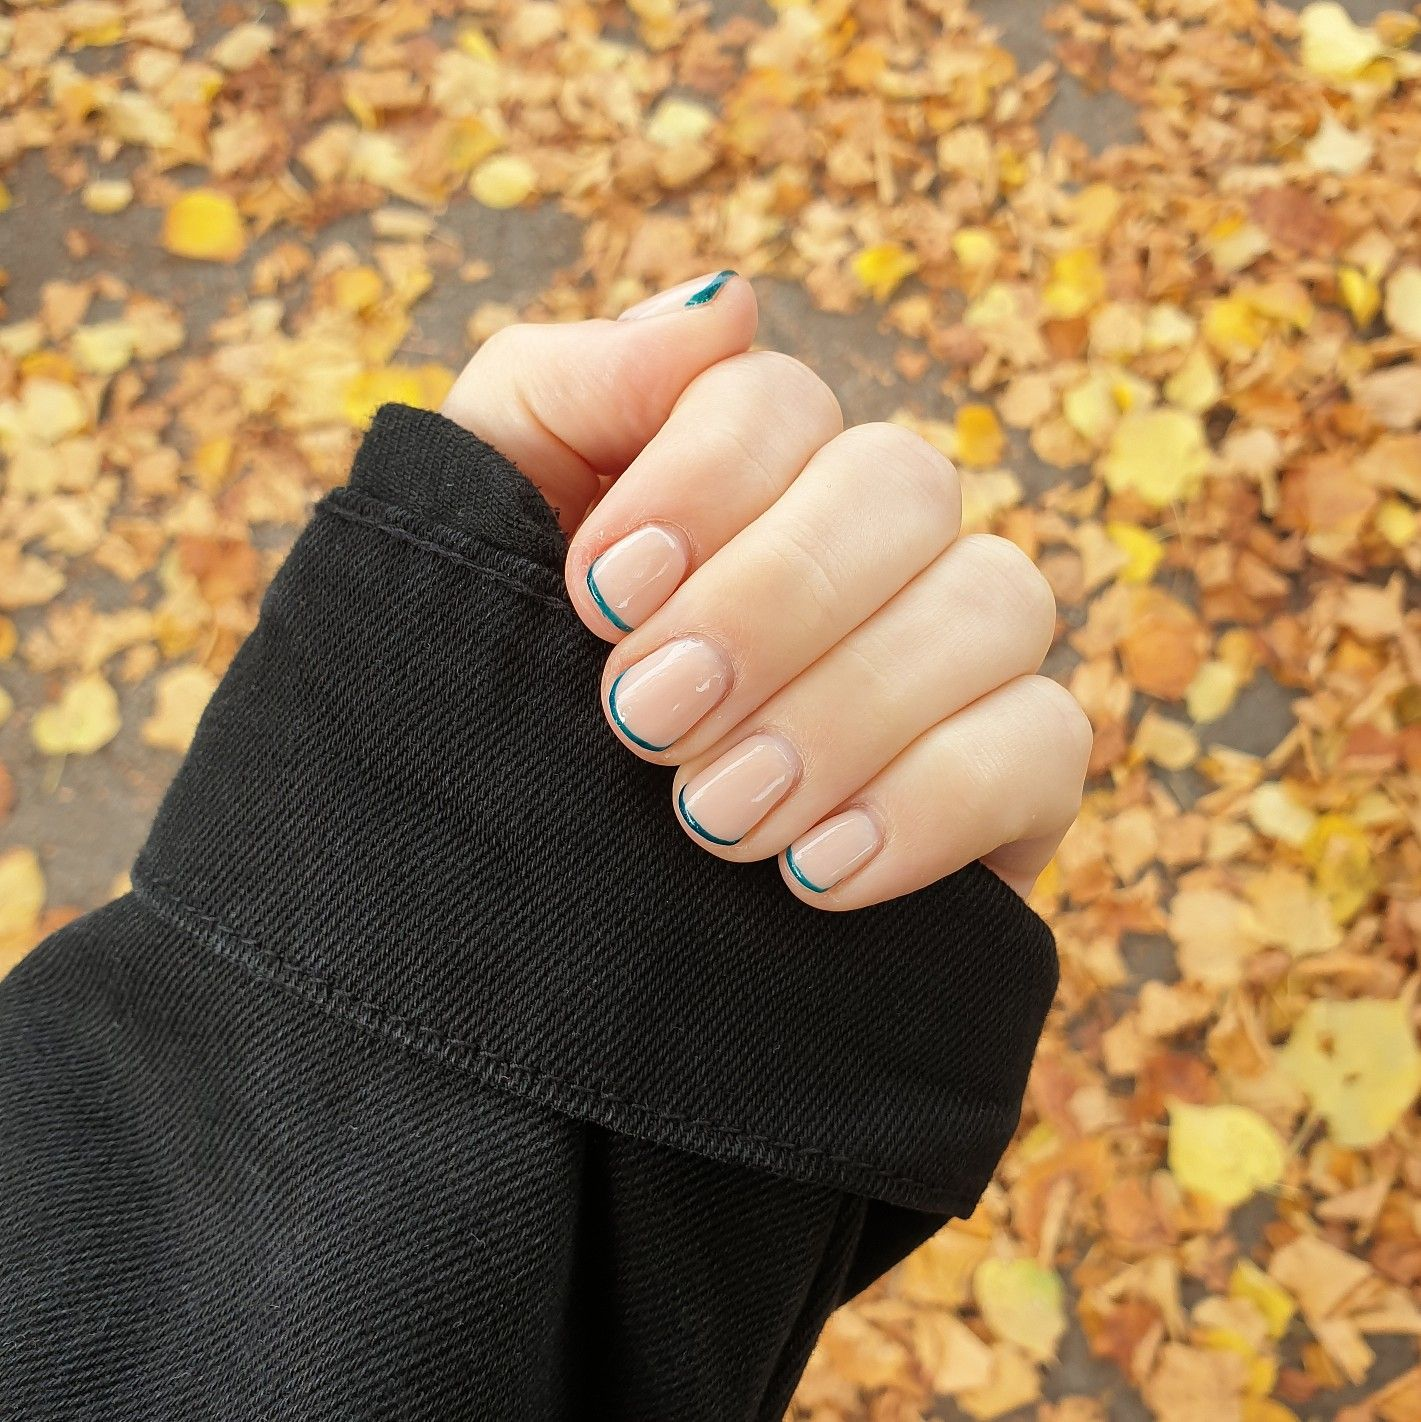 Autumn French . . . Used for this Manicure: @biosculpturegelgb Lavender Base and Upper Arch Brush. @glossifyofficial Naturabuild in Bare, Evergreen and Glossy Top. Prepped with @navyprotools and cuticle balm. @soldejaneiro Bum Bum Cream . . . . #nailsartist #nails #frenchmanicure #naildesign #loveglossify #freshnails #nailfun #classicfrench #Naturabuild #nailcare #wownails #simplisticnails #nailtech #nailsonfleek #nailsofinsta #nailsofinstagram #onlyinyork #navyprotools #ShowScratch#notd#n